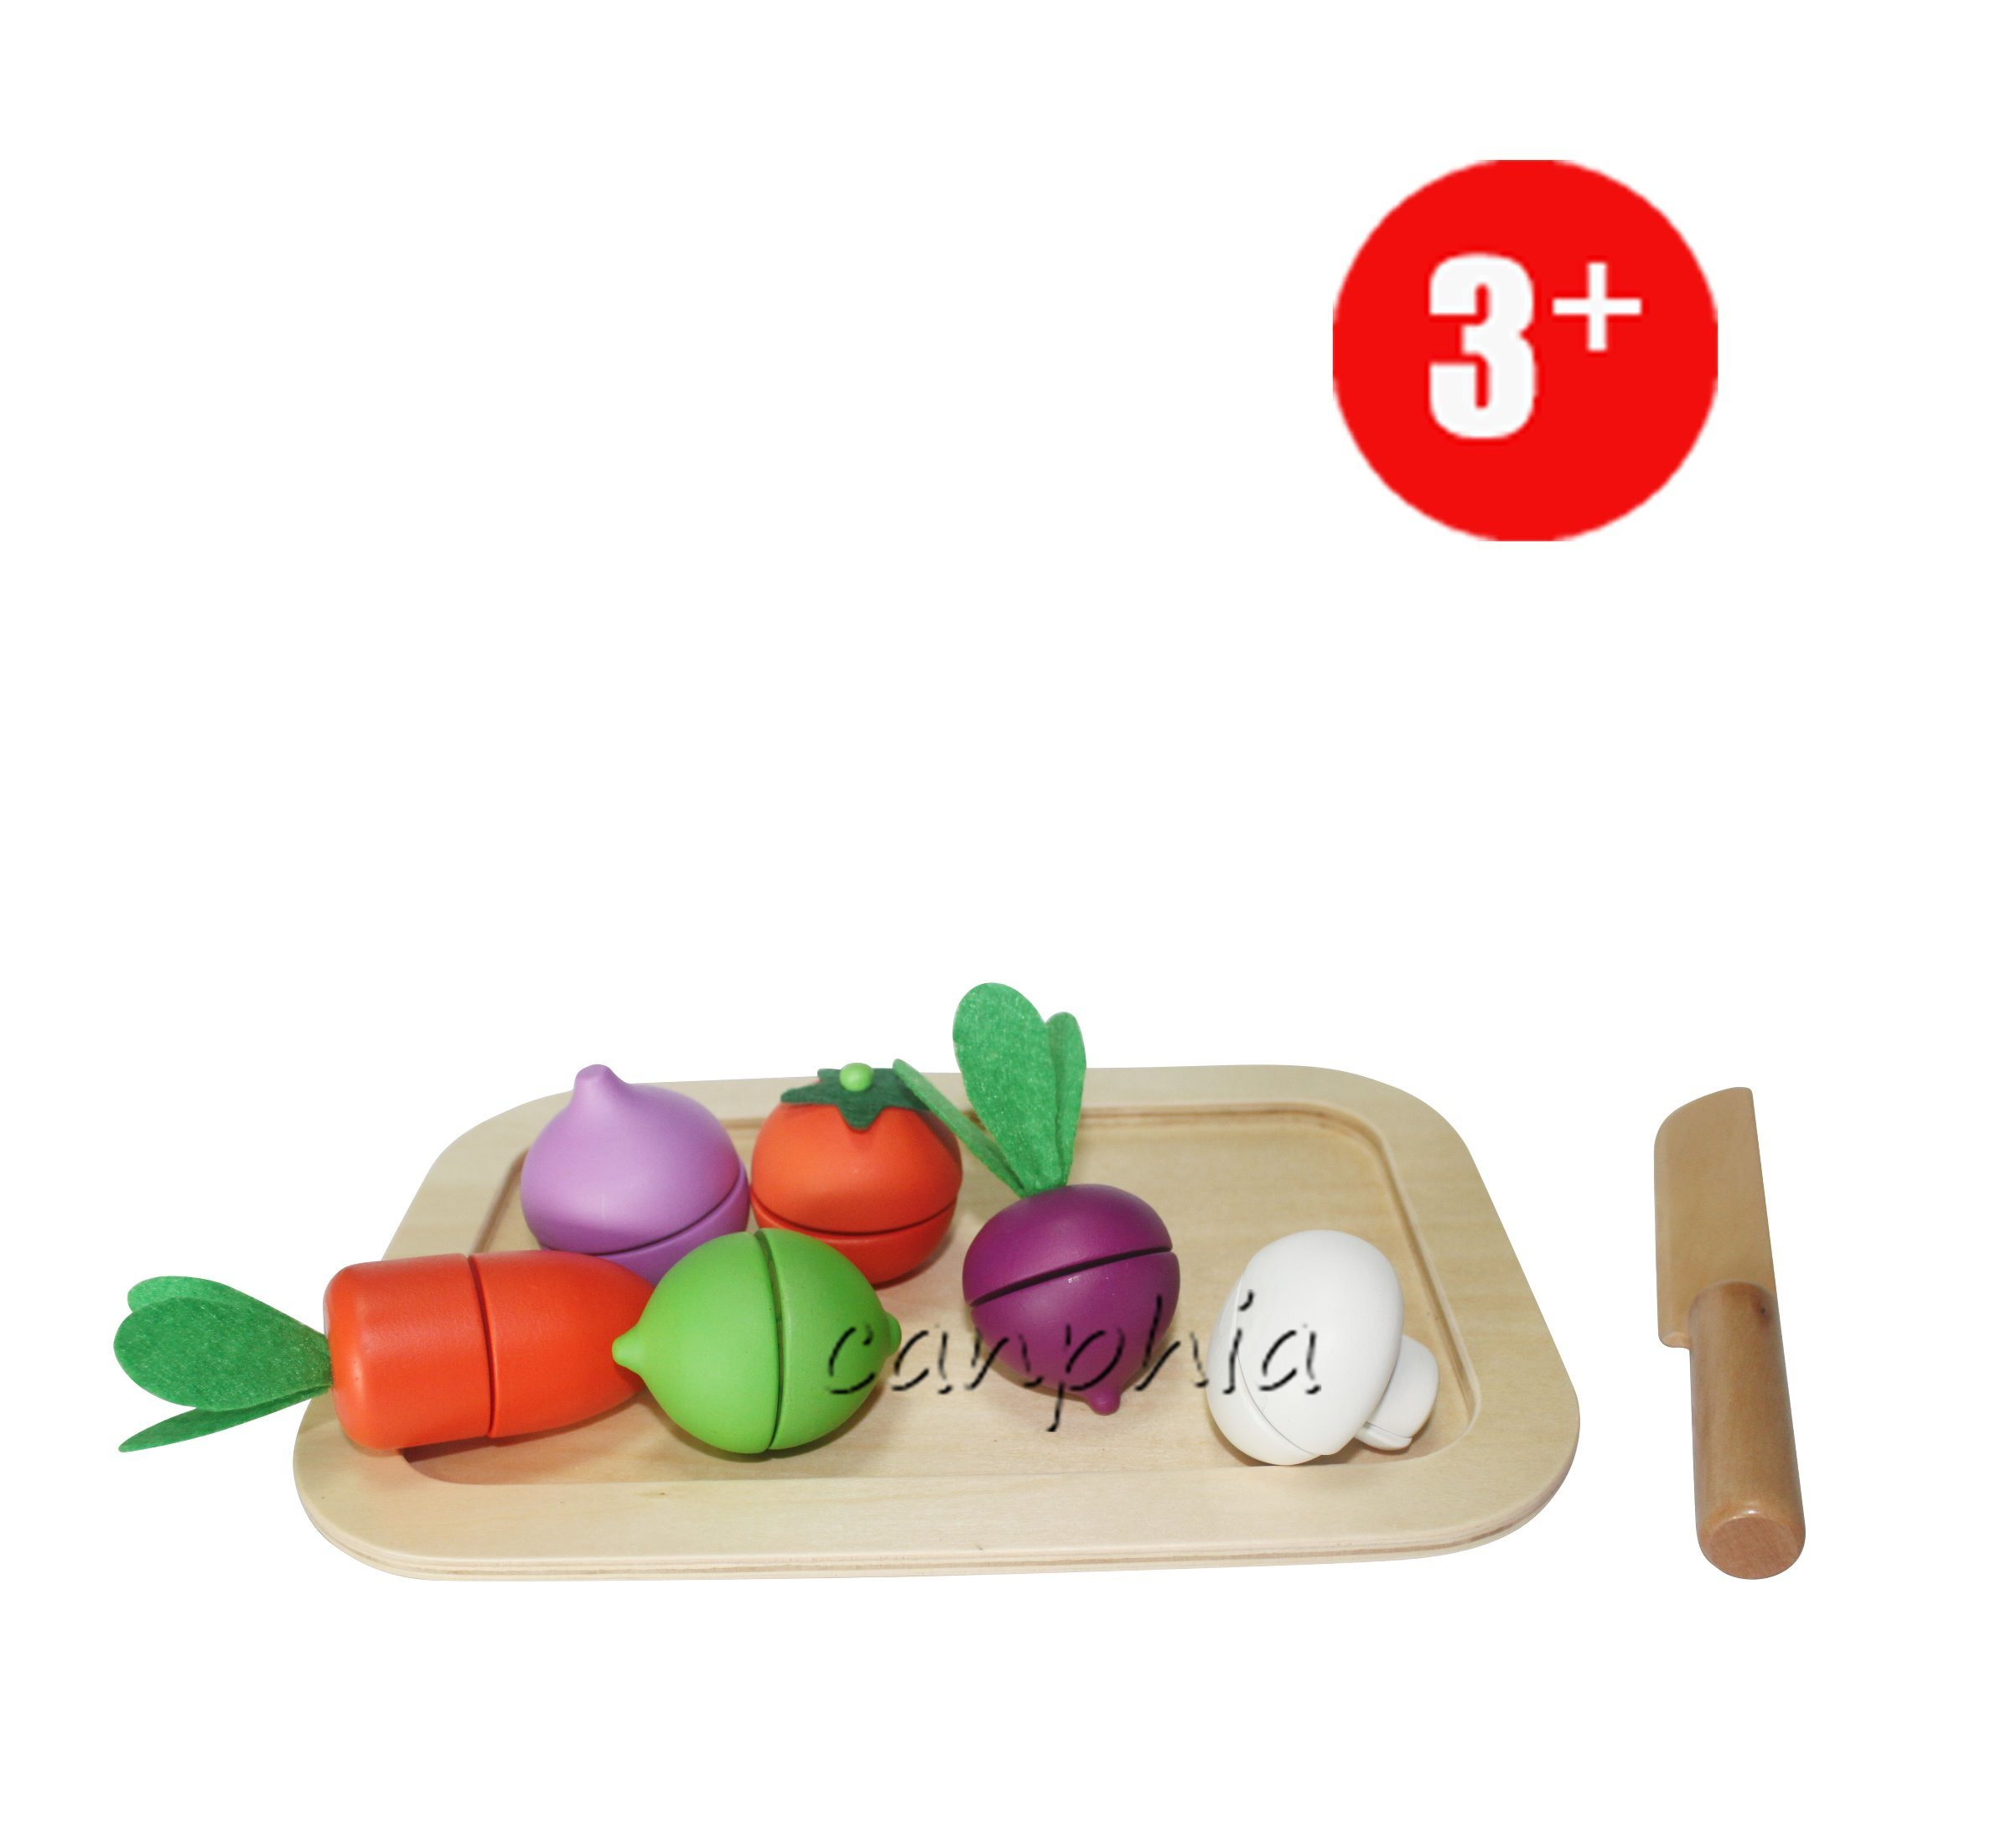 Wooden Cutting Toy Food, Role Play Toy Food for Children, Happy Playfully Cutting Wood Food Toy Ca04019